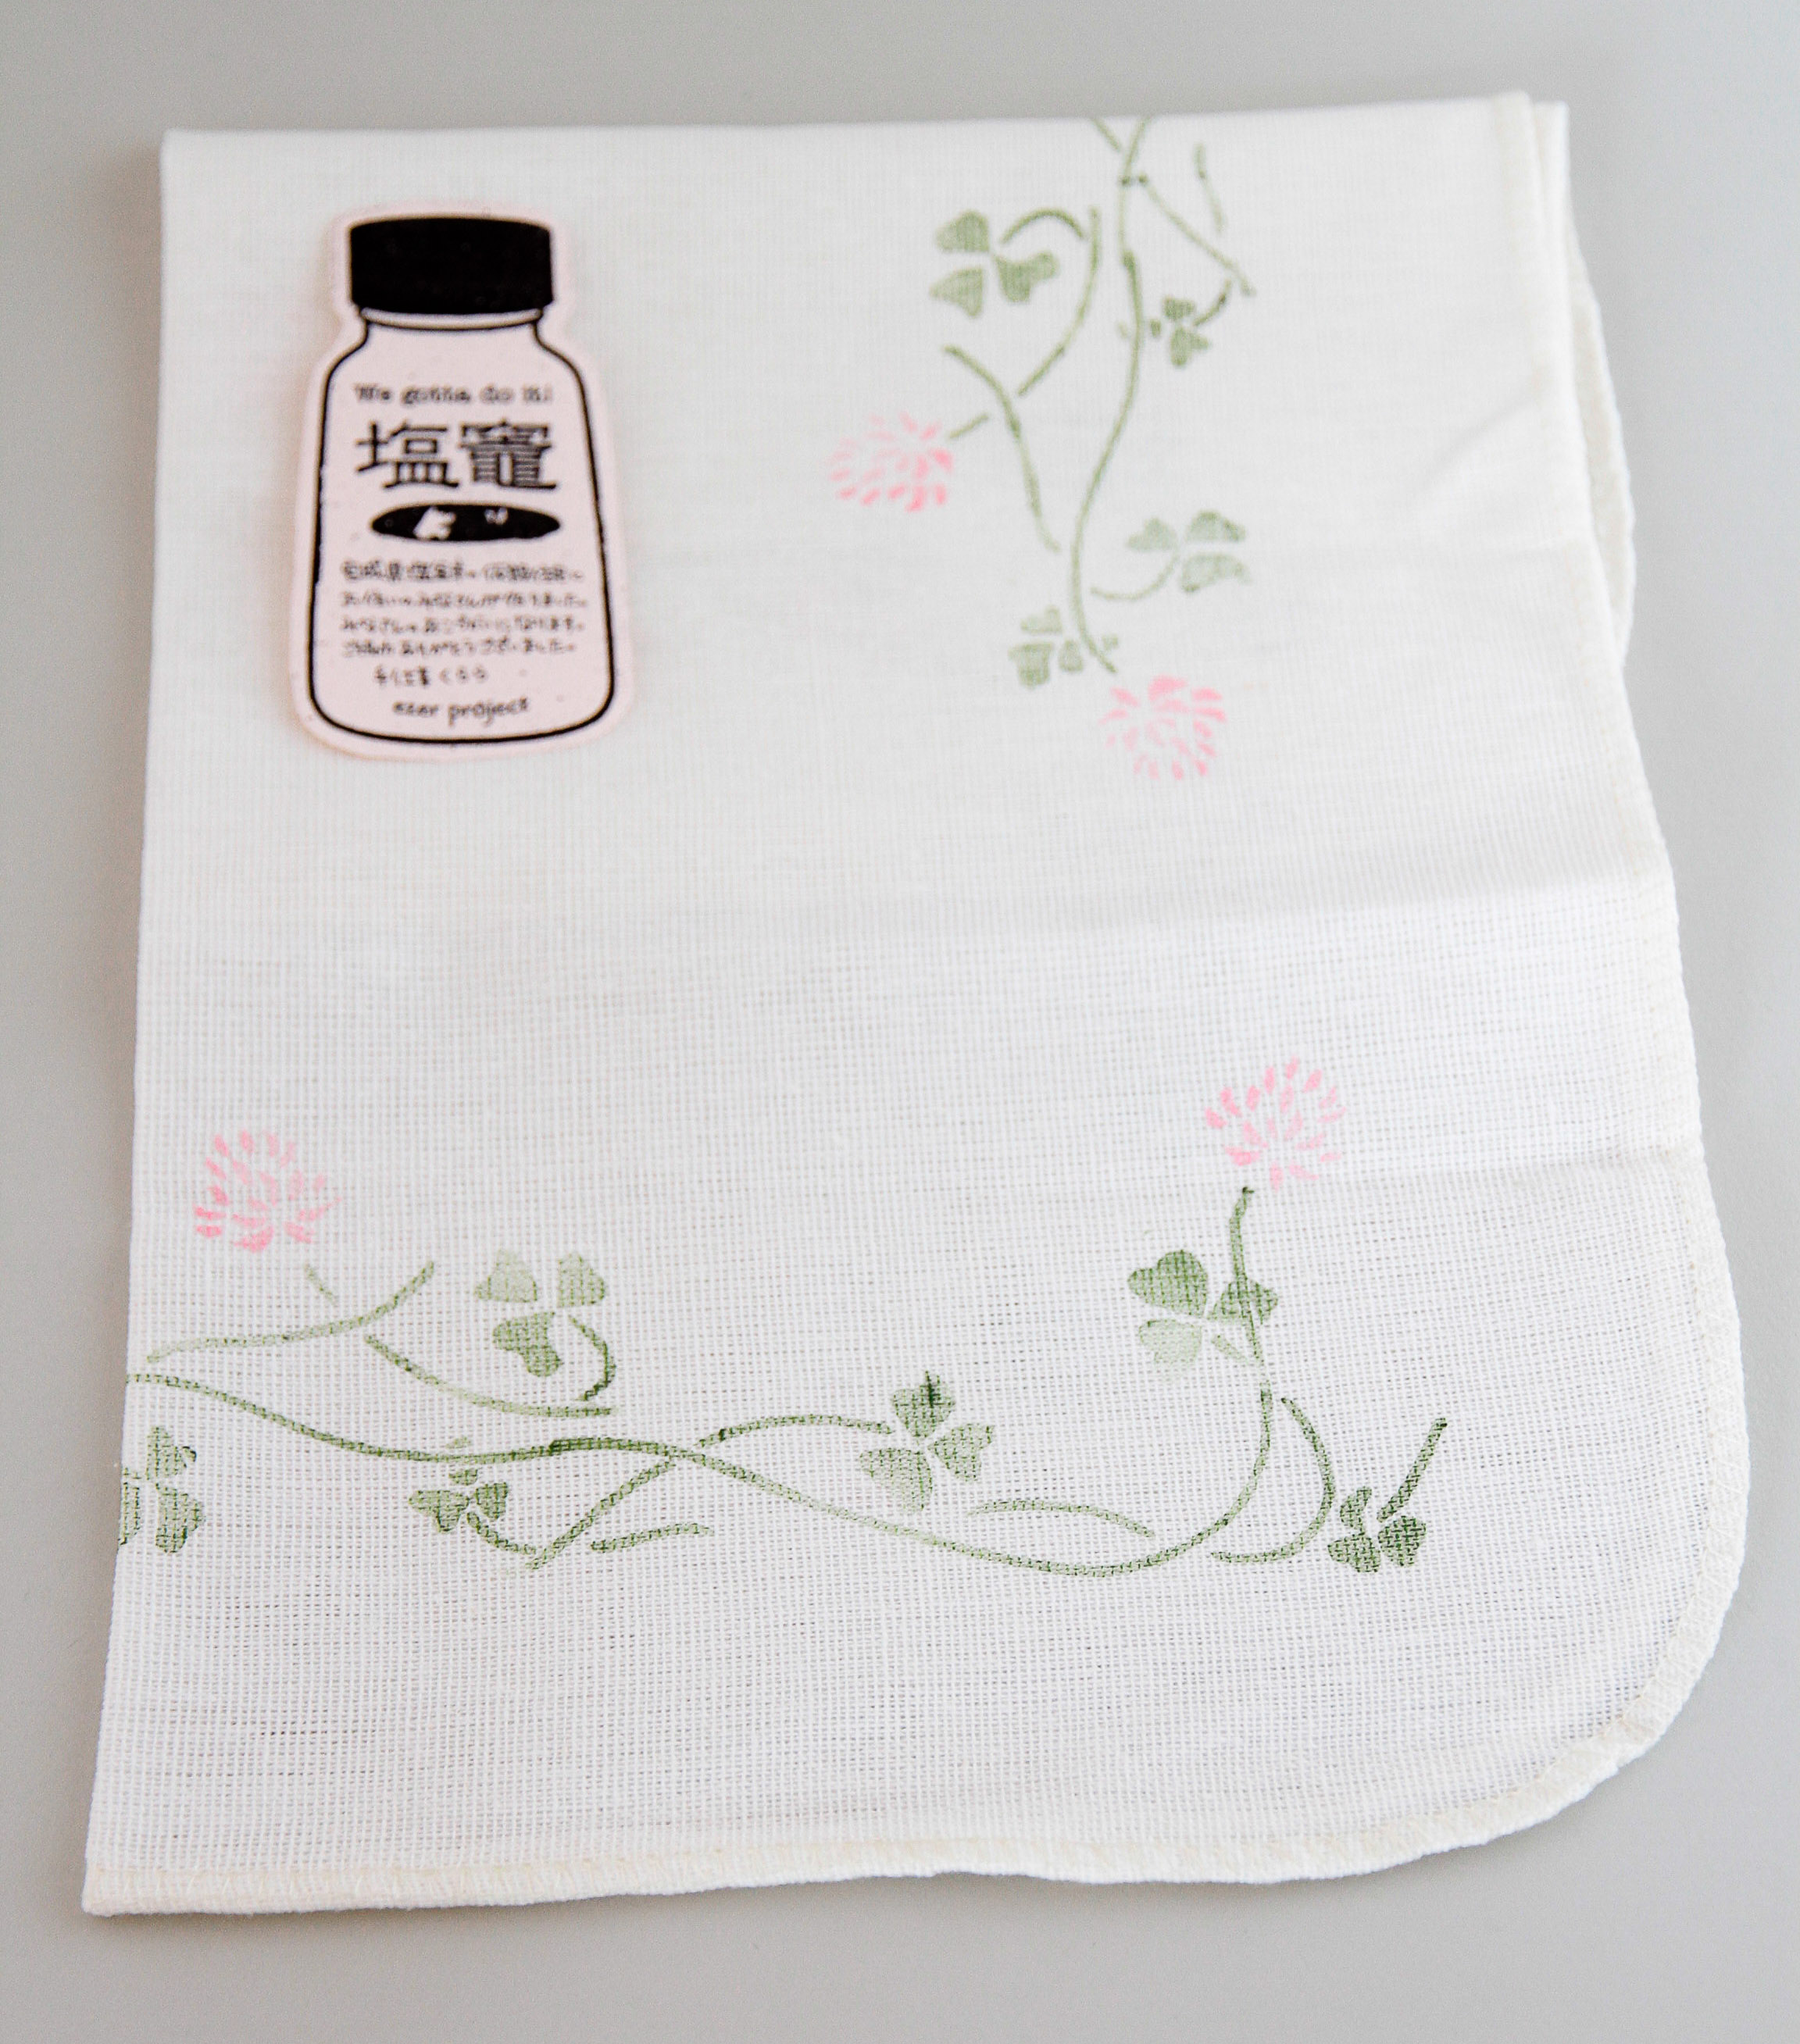 Dishwashing towel with handmade rubber stamp